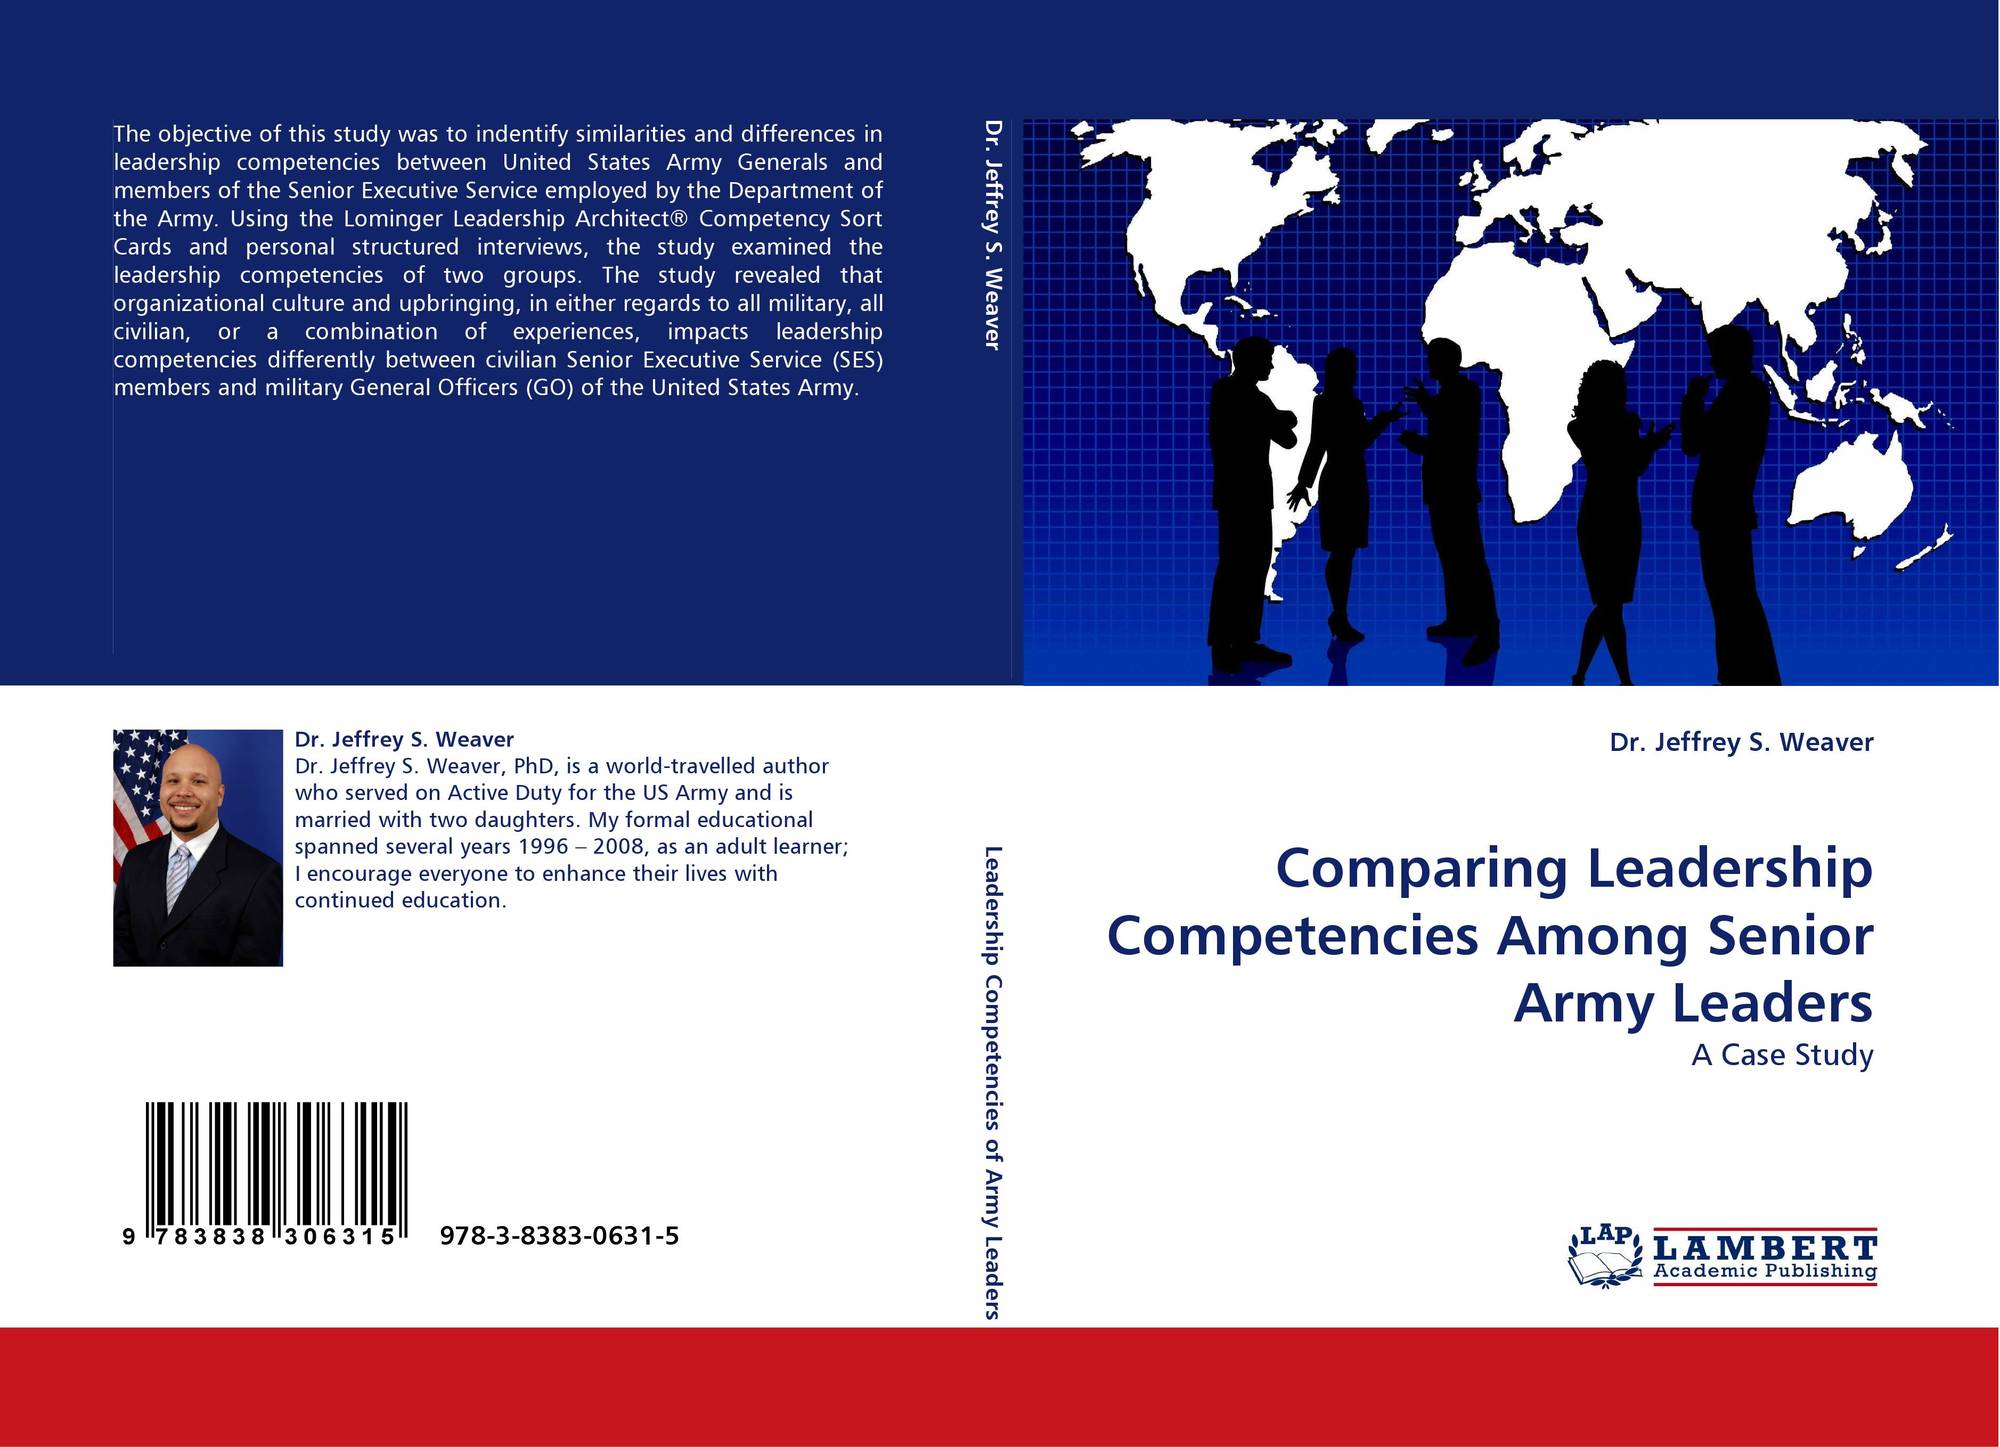 comparing management leadership Downloadable this article examines leadership and management styles of  managers in small and middle sized companies in the czech republic and  austria.